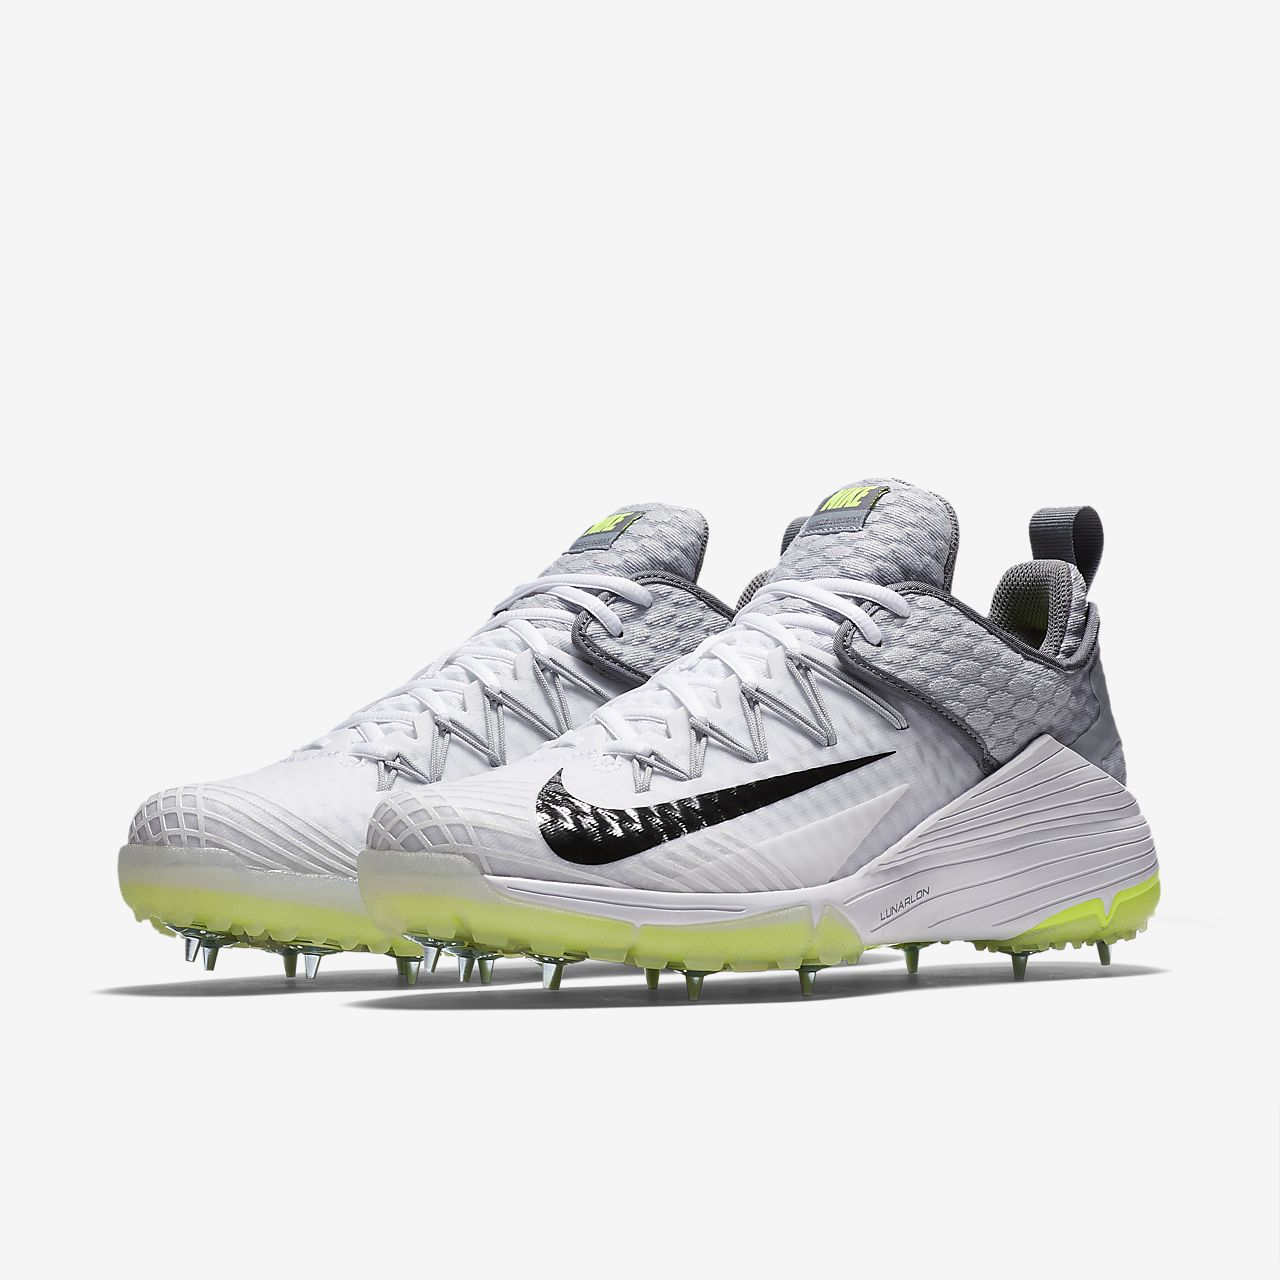 size 40 f5695 71e3a ... Nike Lunar Audacity Men s Cricket Shoe